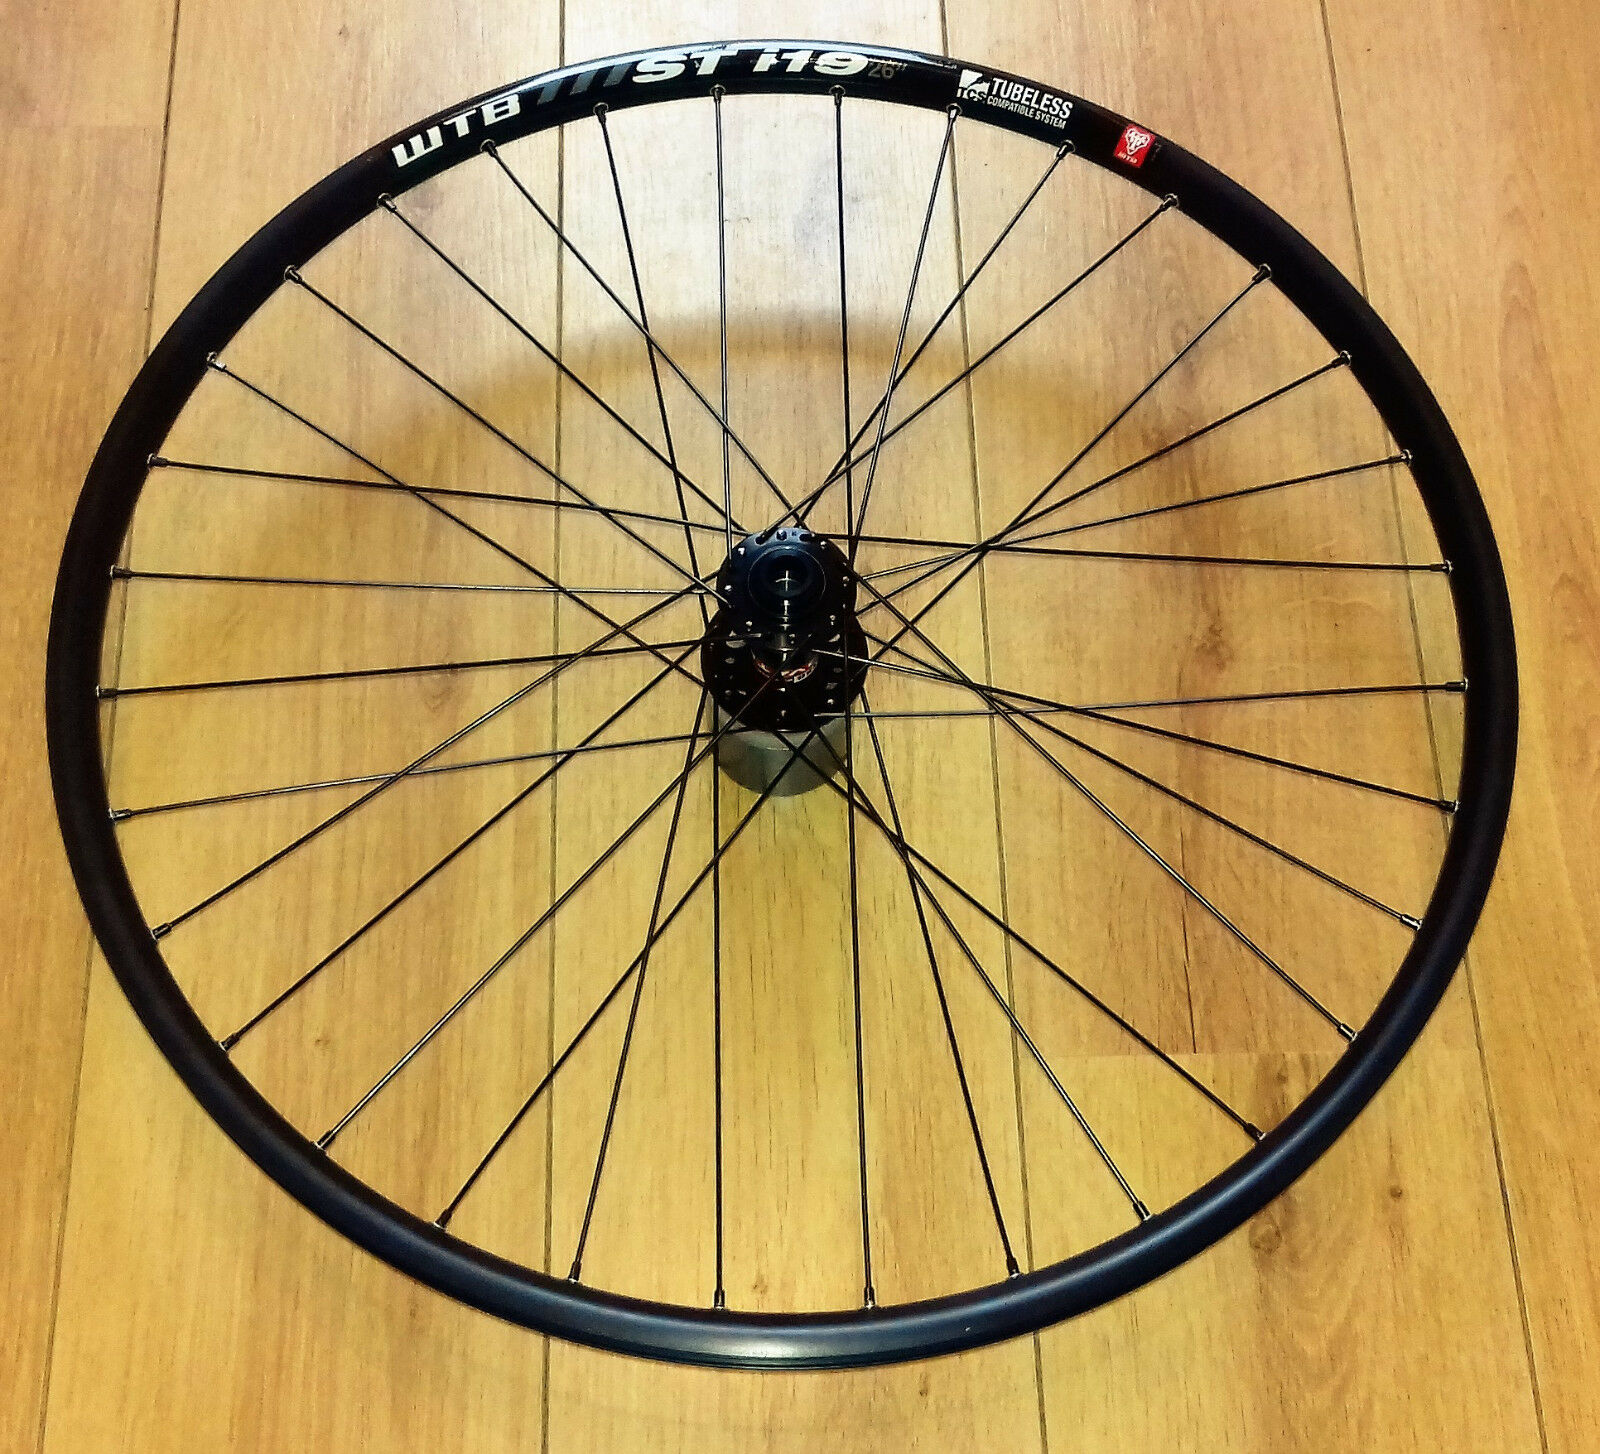 WTB Frequency, ST, or KOM, 26 or 27.5 inch, Novatec D791SB Hubs Front Wheels